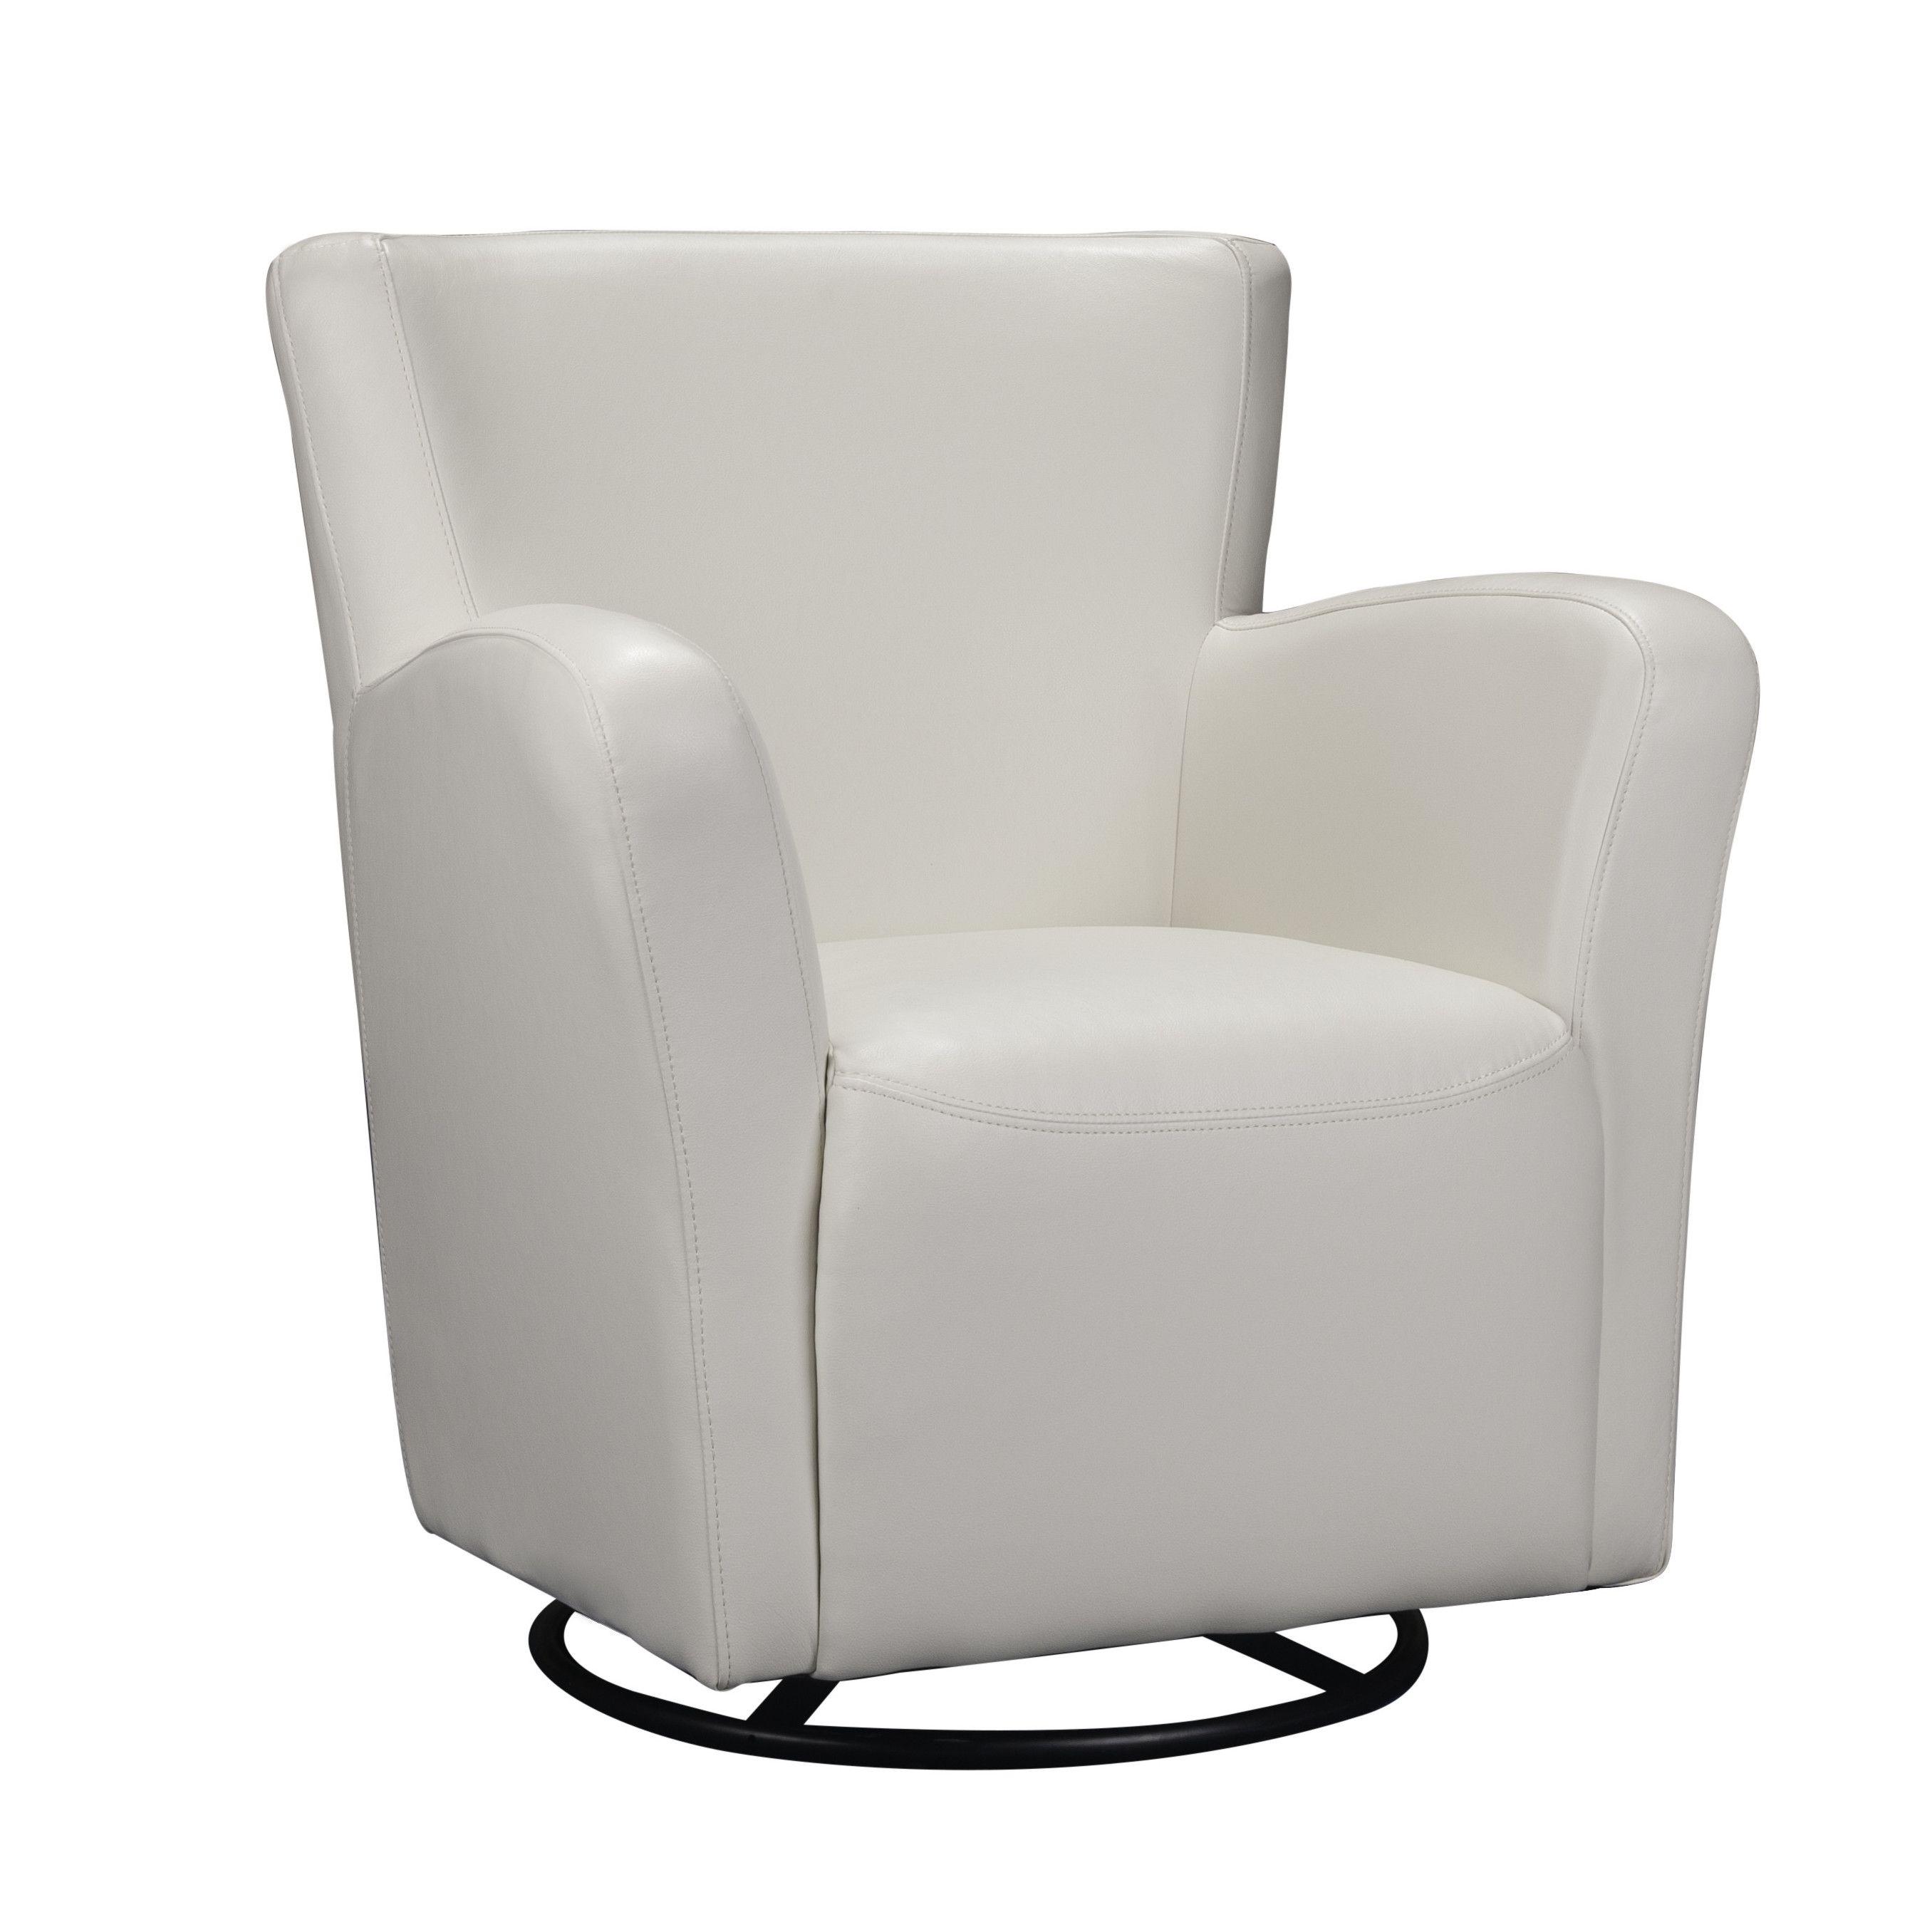 Picket house furnishings marilyn swivel arm chair